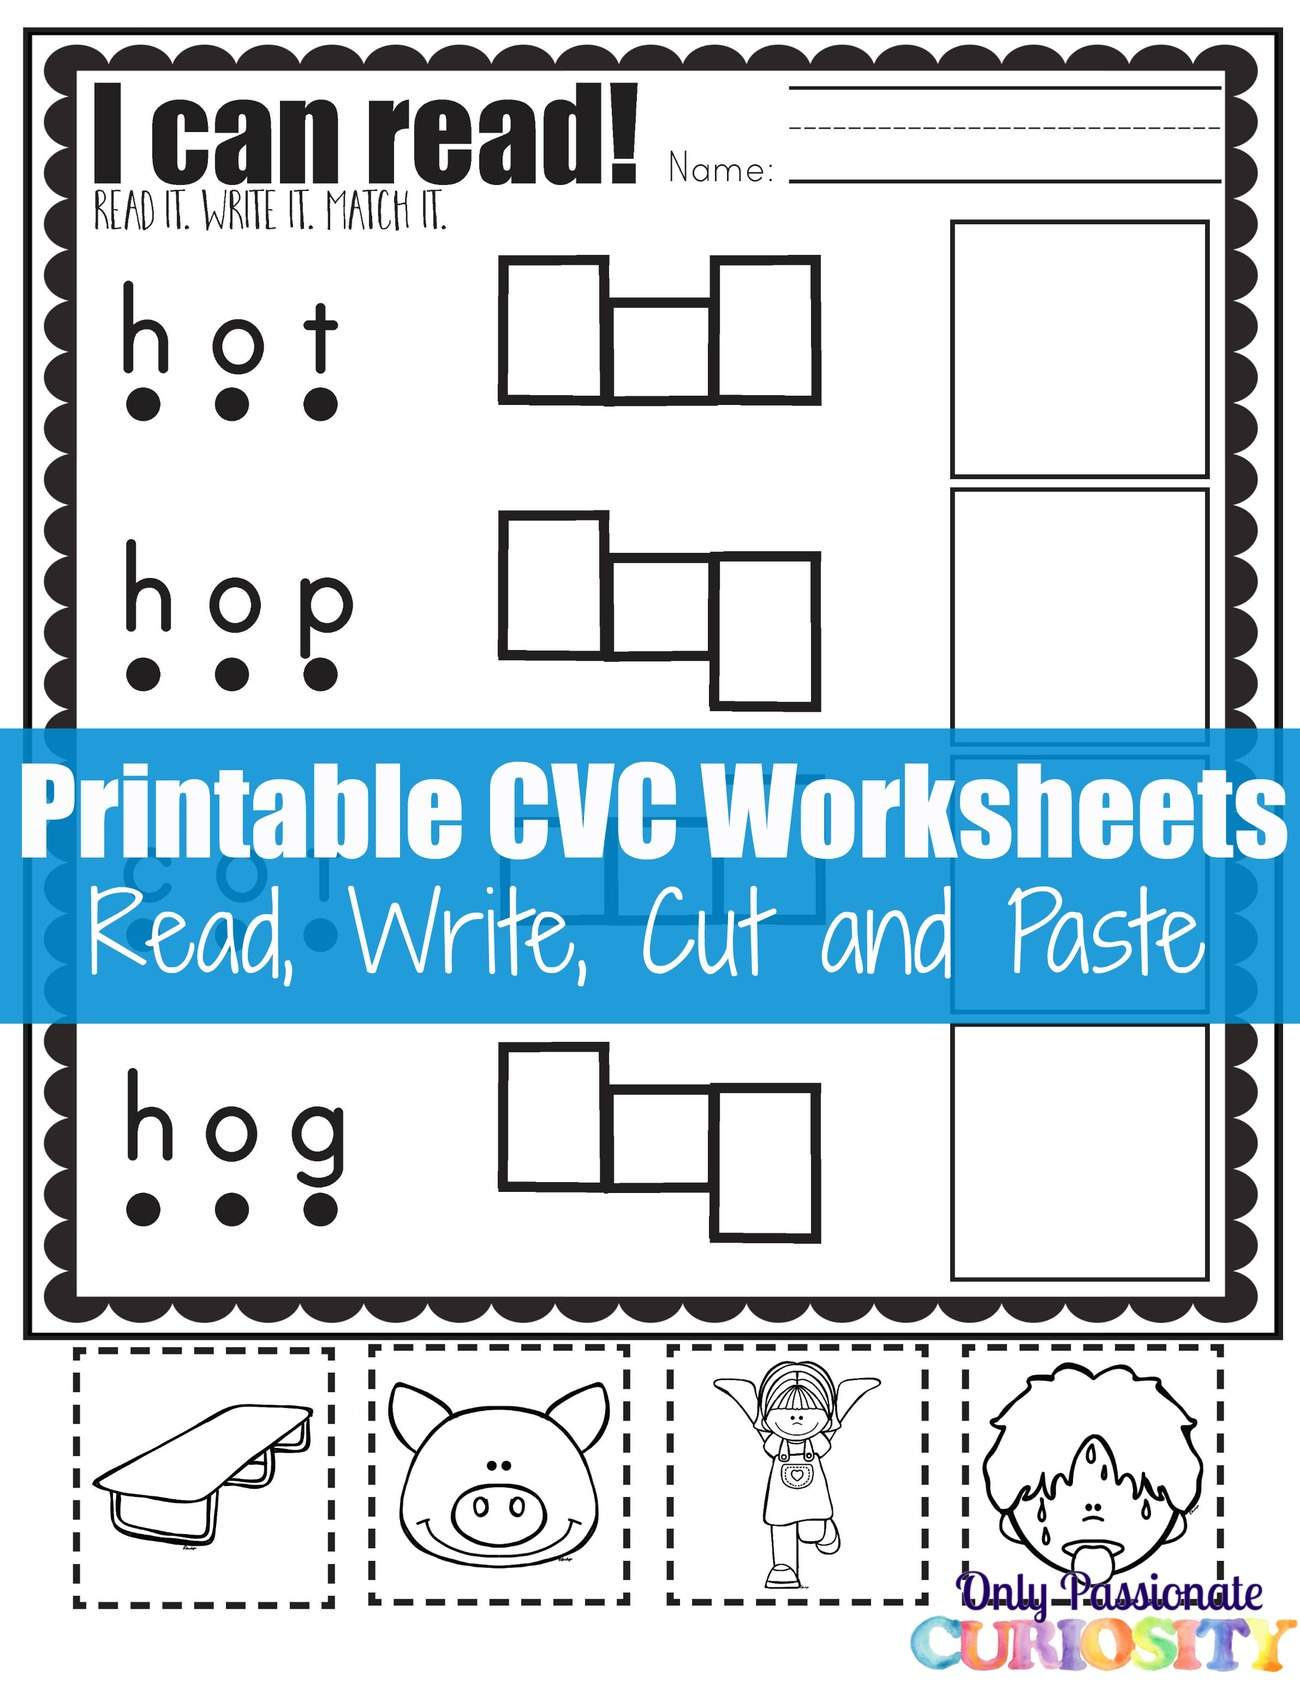 Cvc Worksheets Cut And Paste Letter O Only Passionate